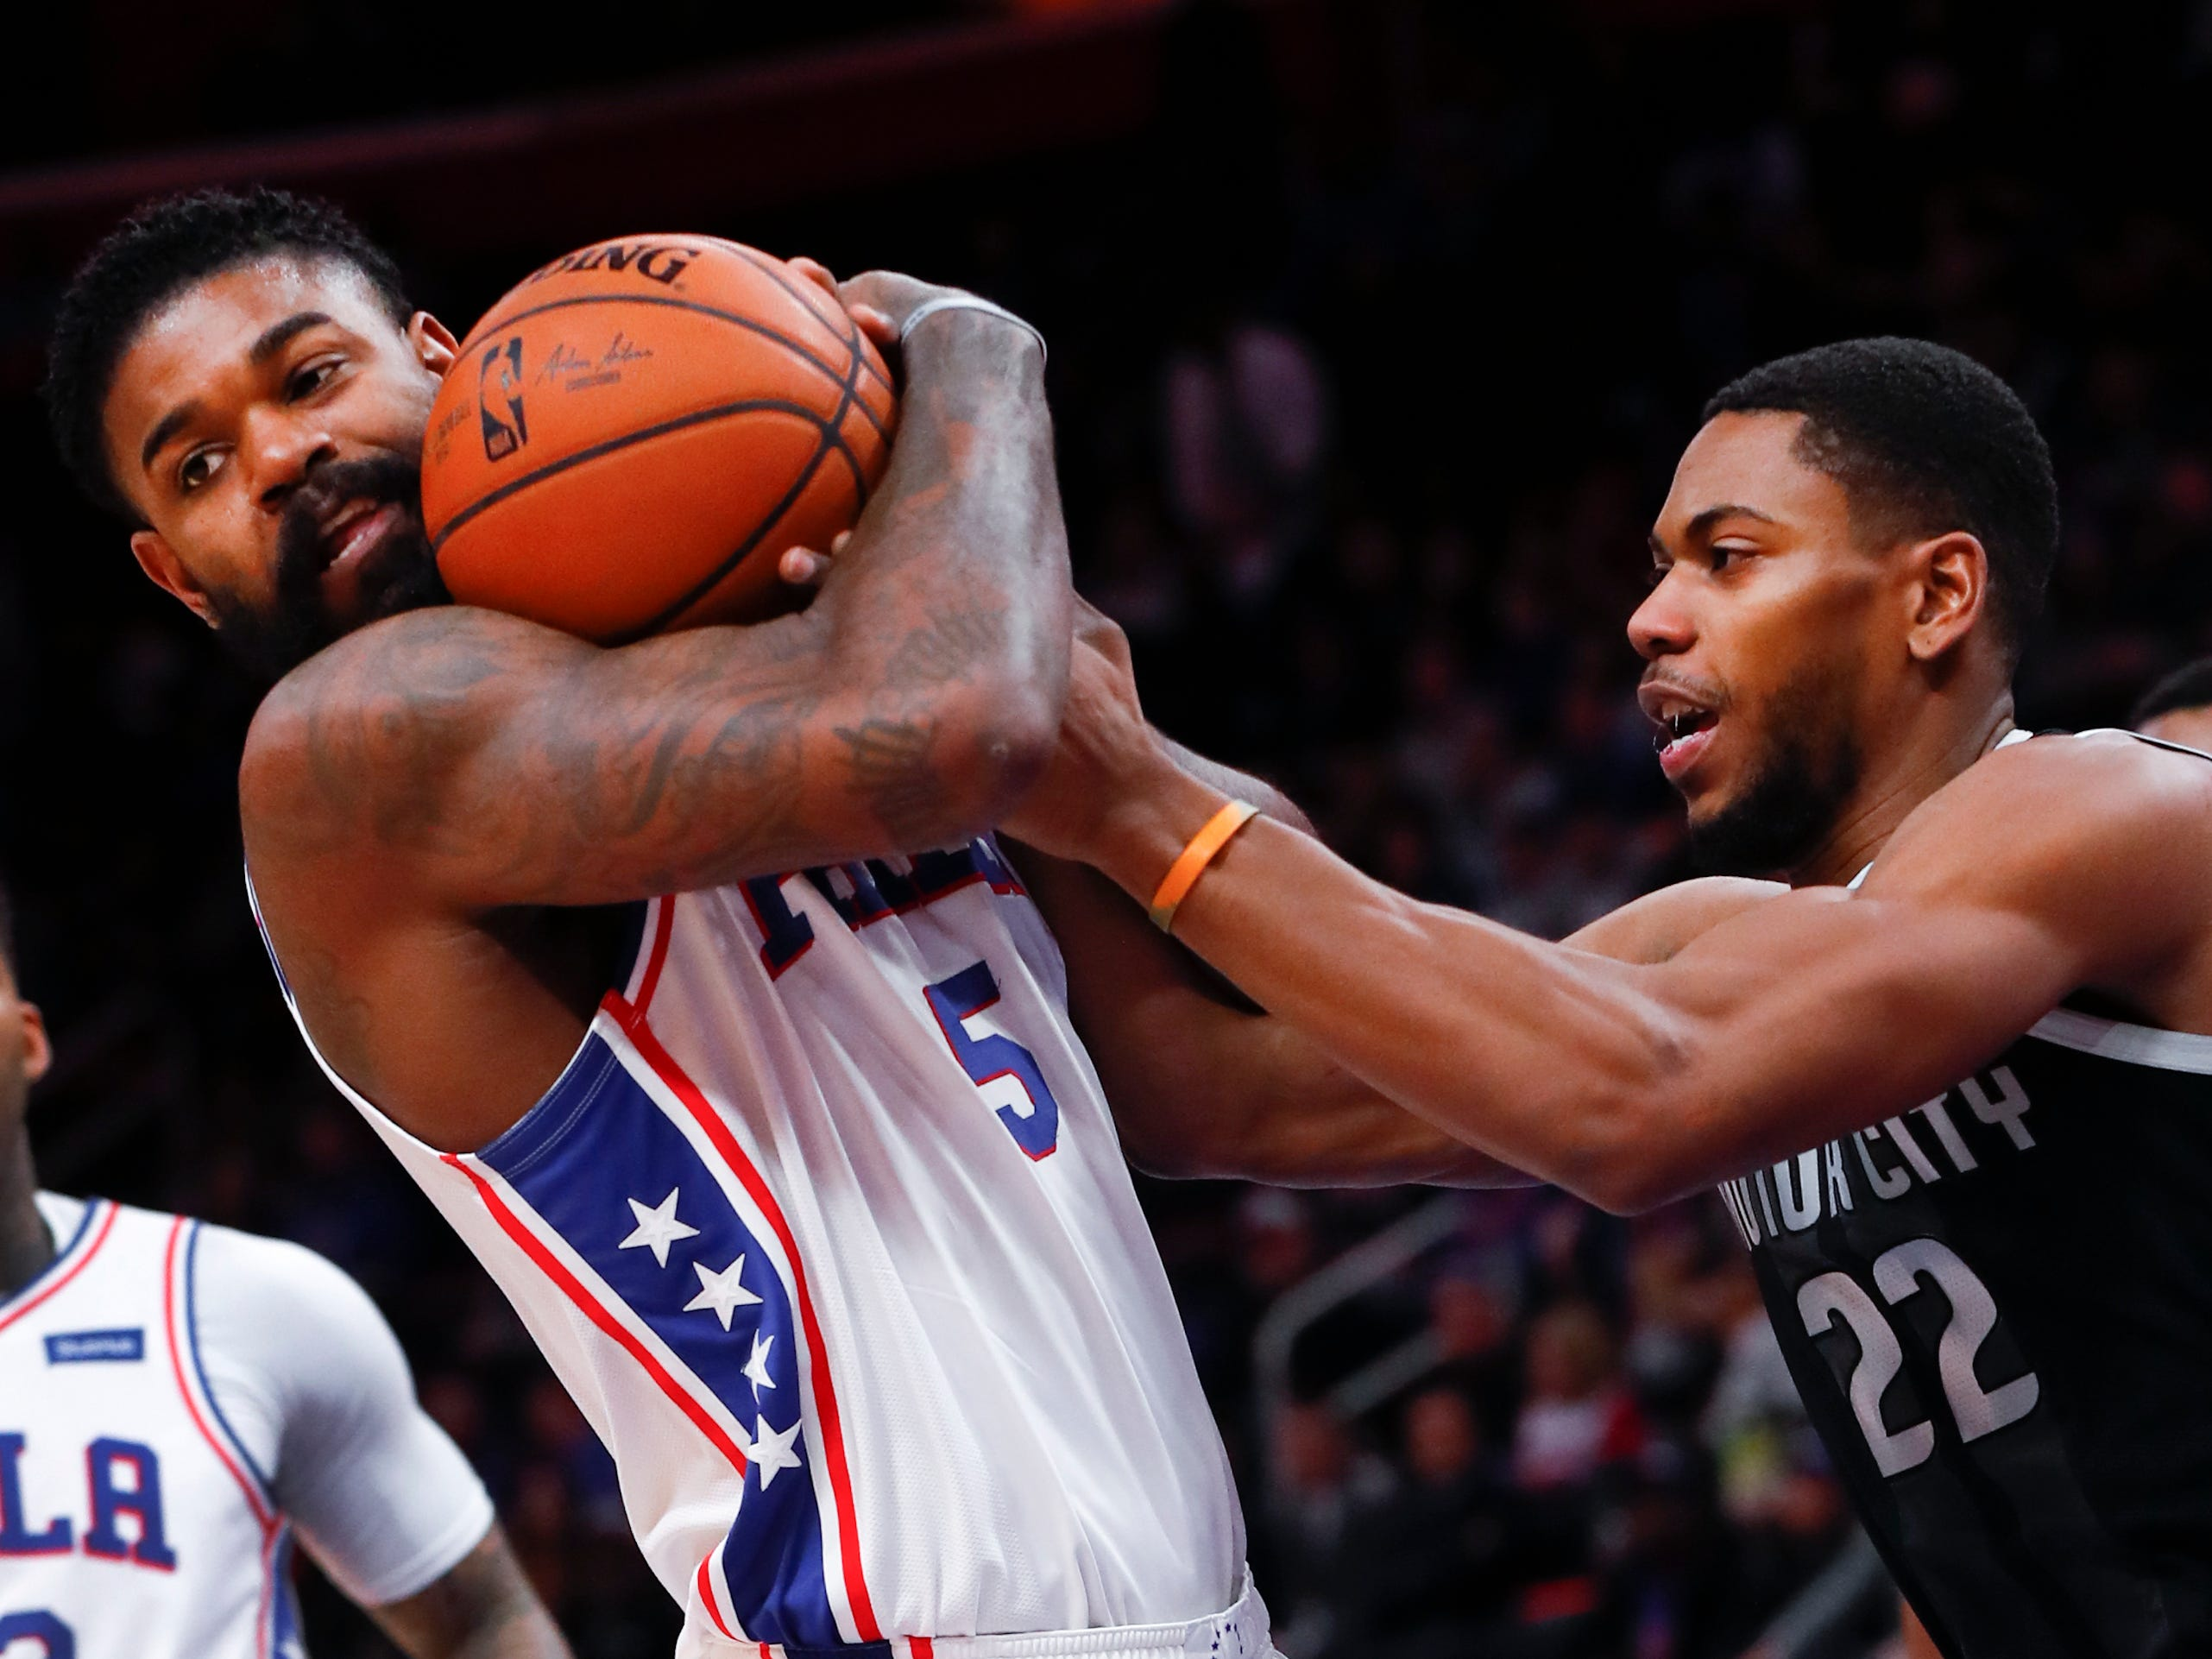 Philadelphia 76ers center Amir Johnson (5) and Detroit Pistons guard Glenn Robinson III (22) battle for the ball in the first half of their game in Detroit, Friday, Dec. 7, 2018.